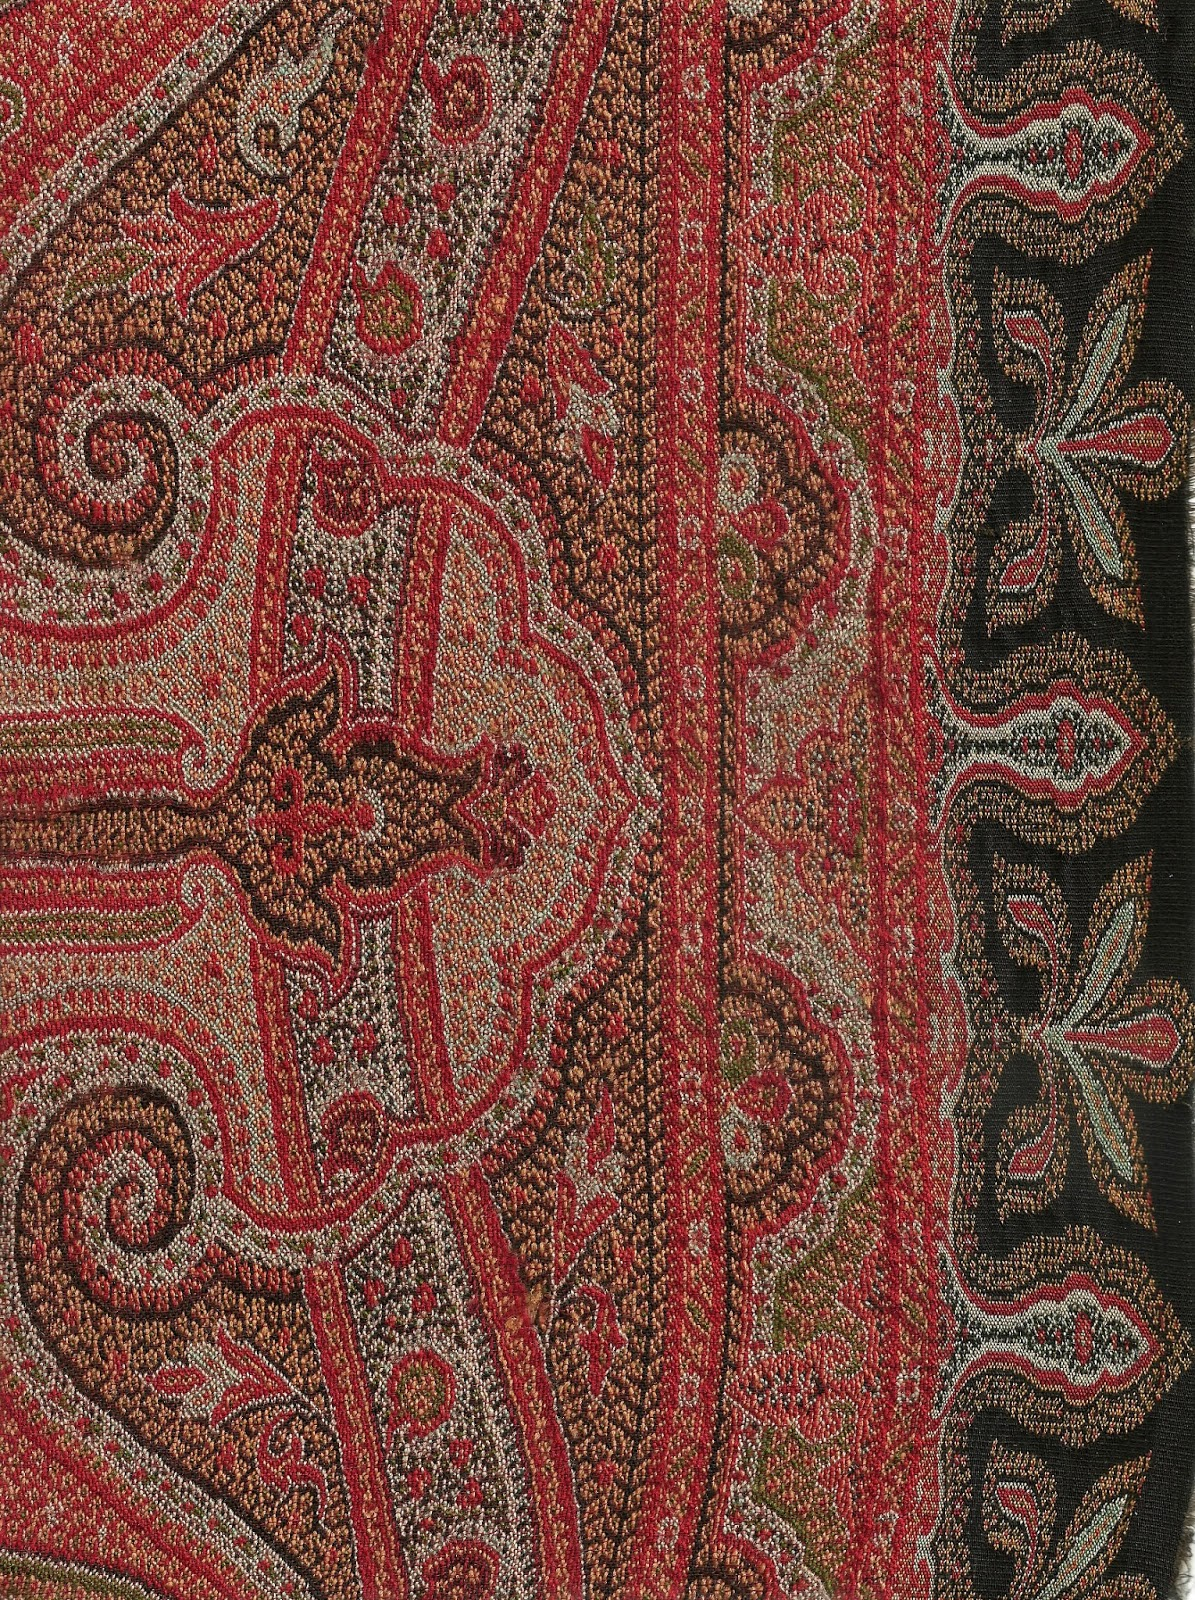 Unraveling Threads: Paisley